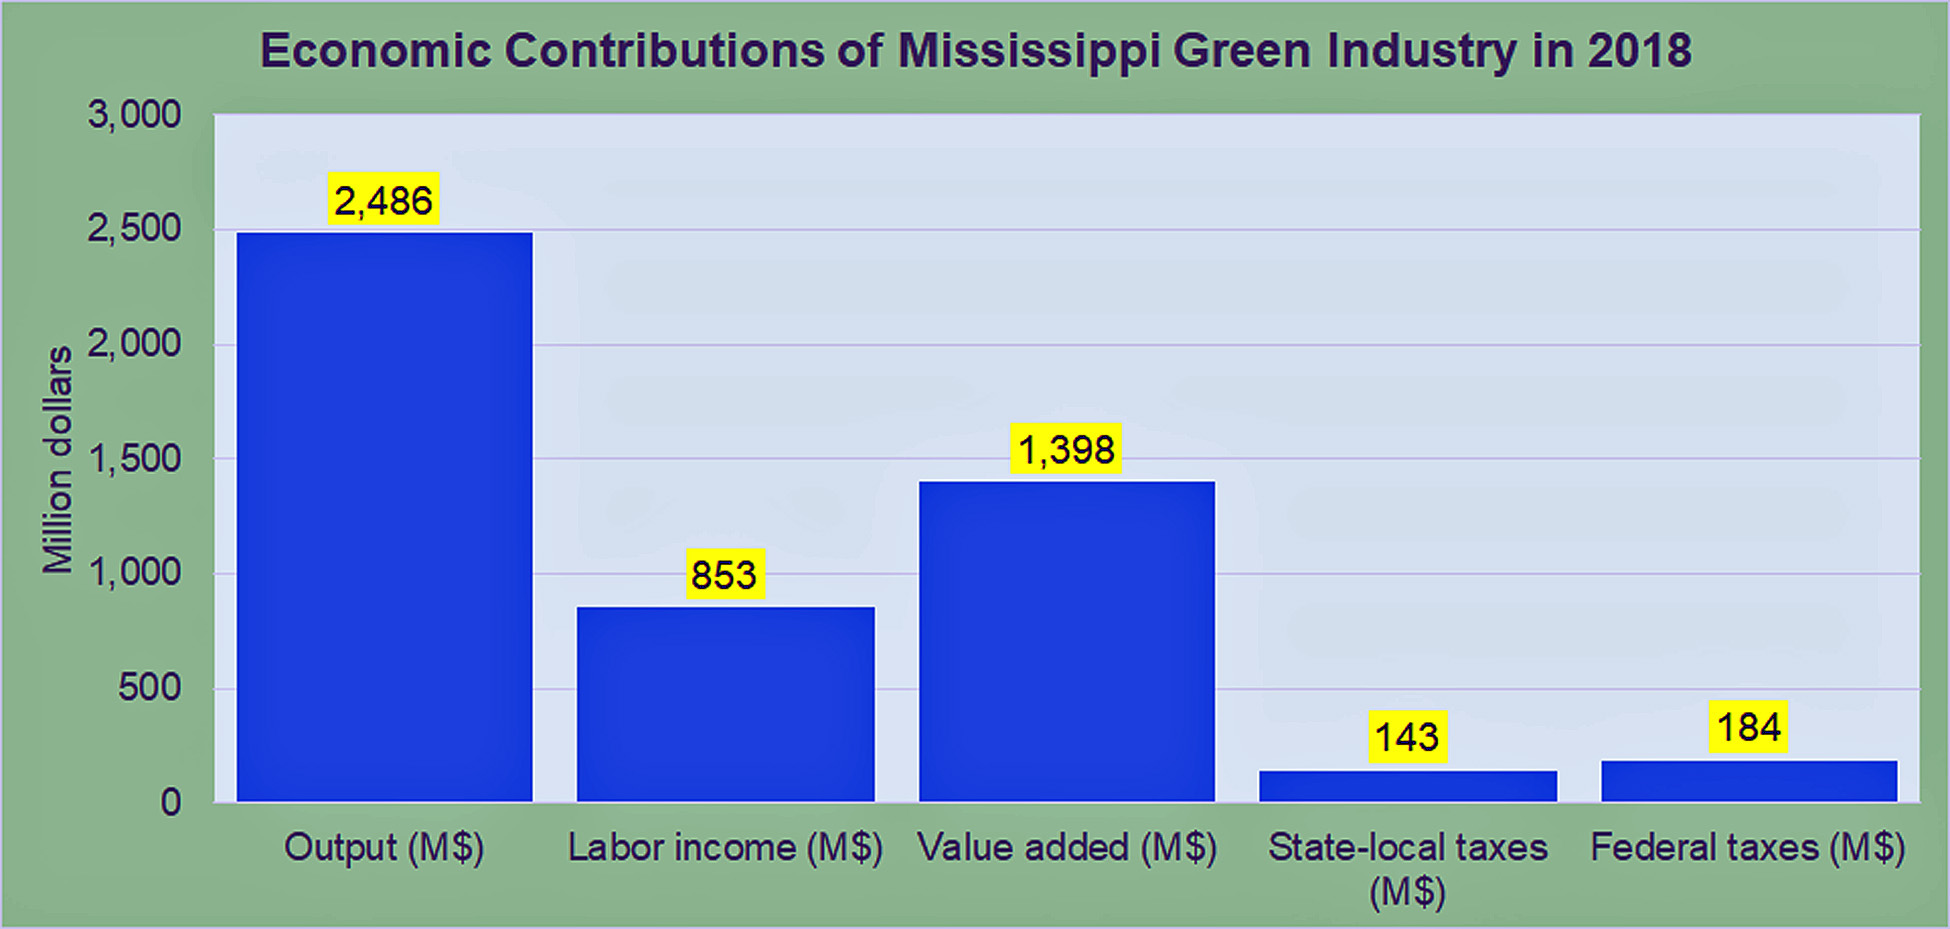 Economic Contributions of Mississippi Green Industry in 2018